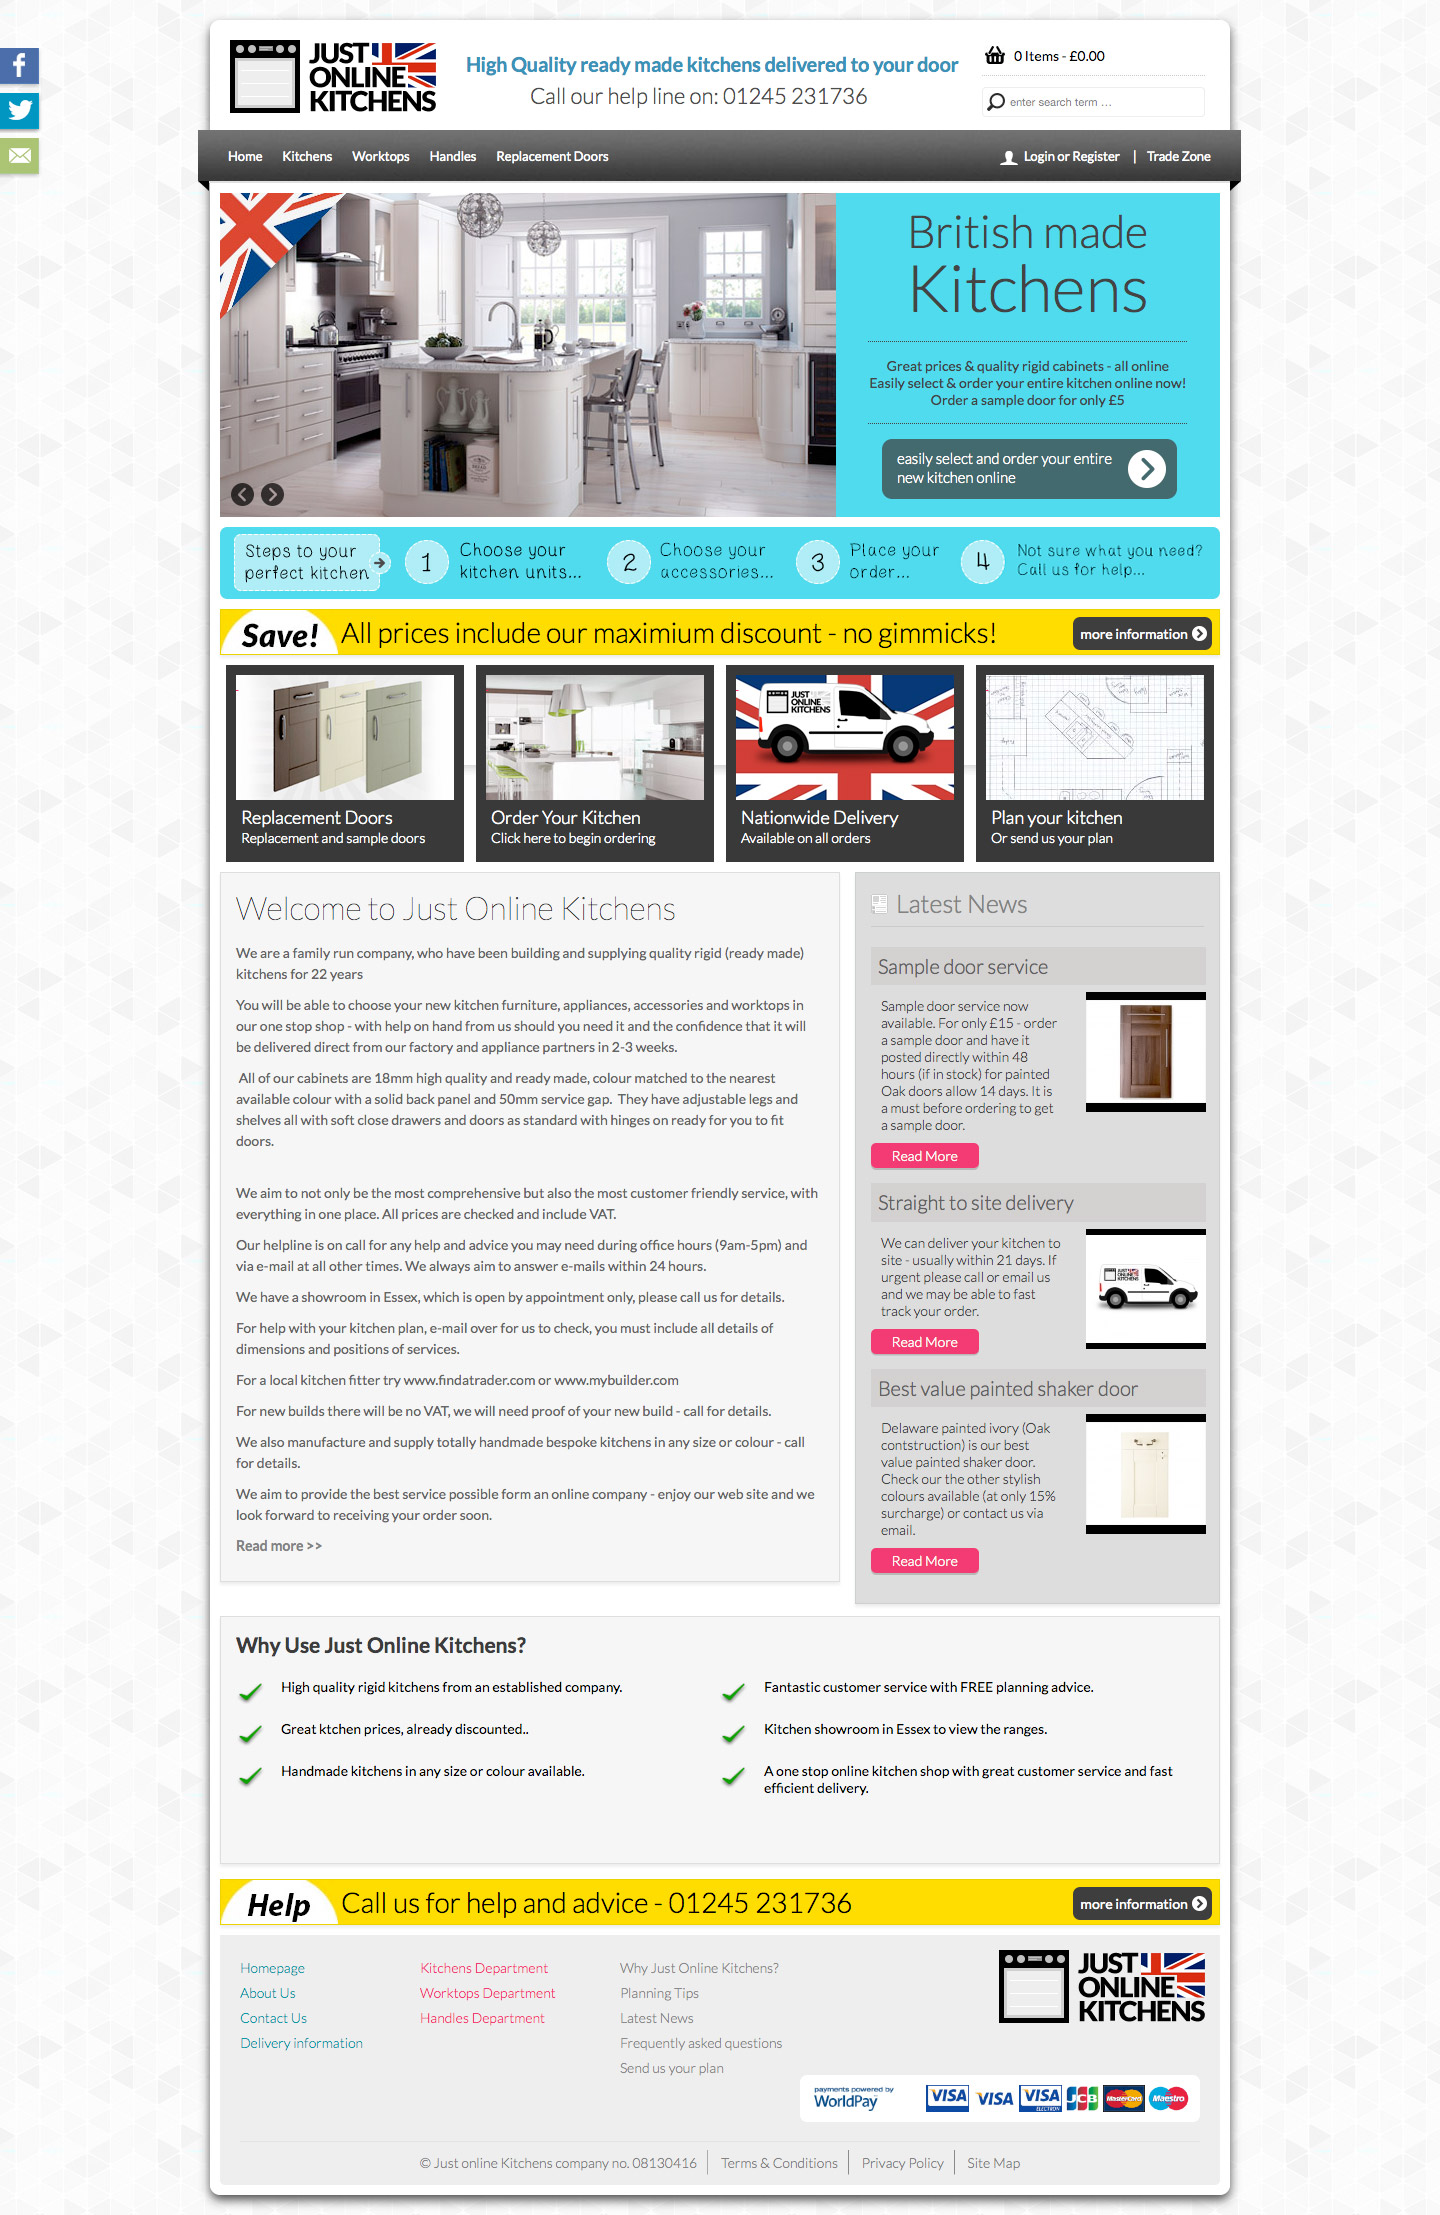 Just Online Kitchens Homepage design